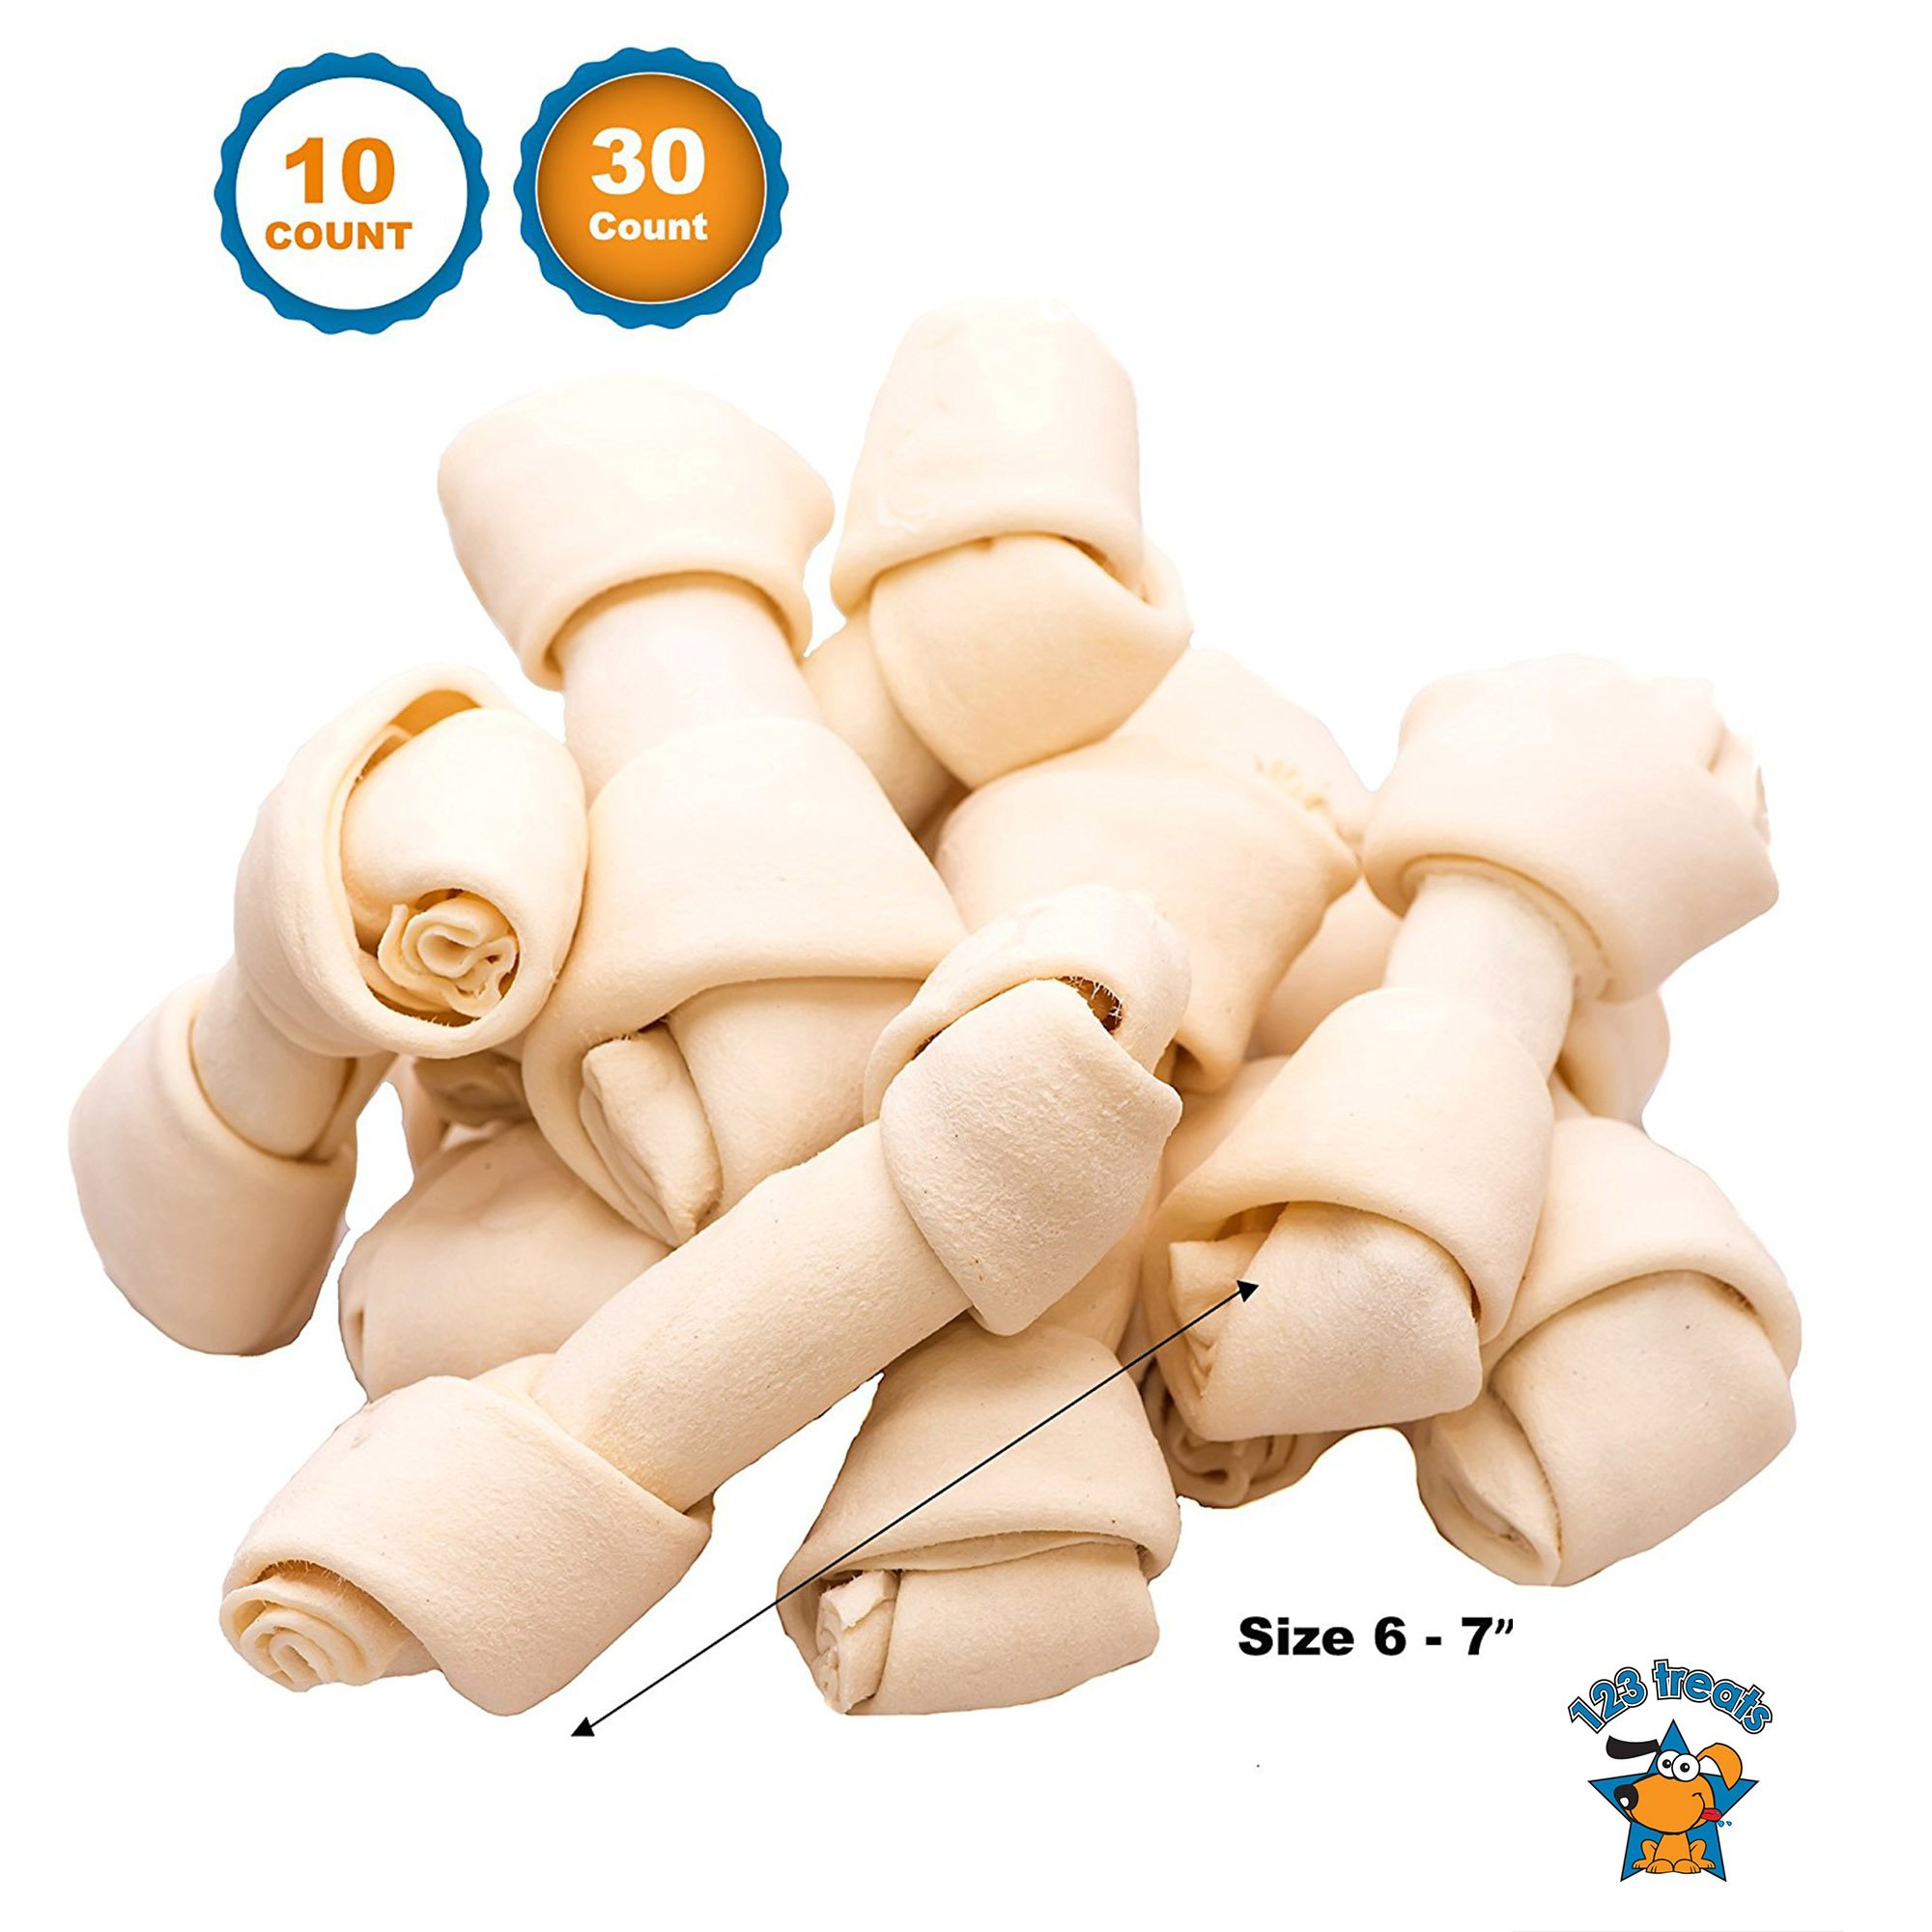 123 Treats - Dog Rawhide Chews Bones for Medium to Large Dogs 6-7'' (30 Count) 100% Natural Premium Bulk Treats by 123 Treats (Image #1)